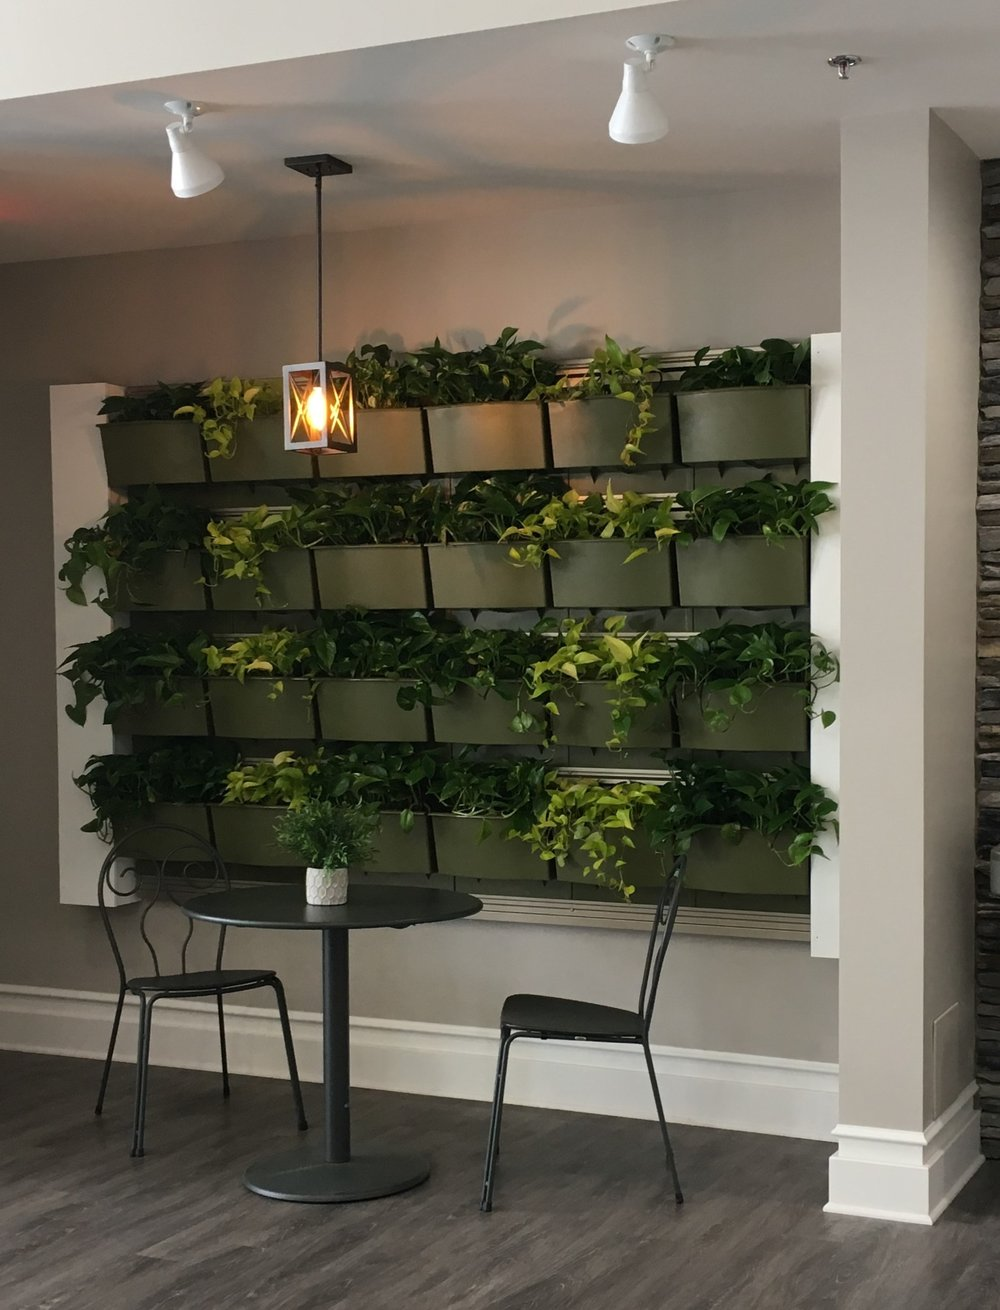 Living plant walls help to bring in color and interest to make this sitting area much more inviting.